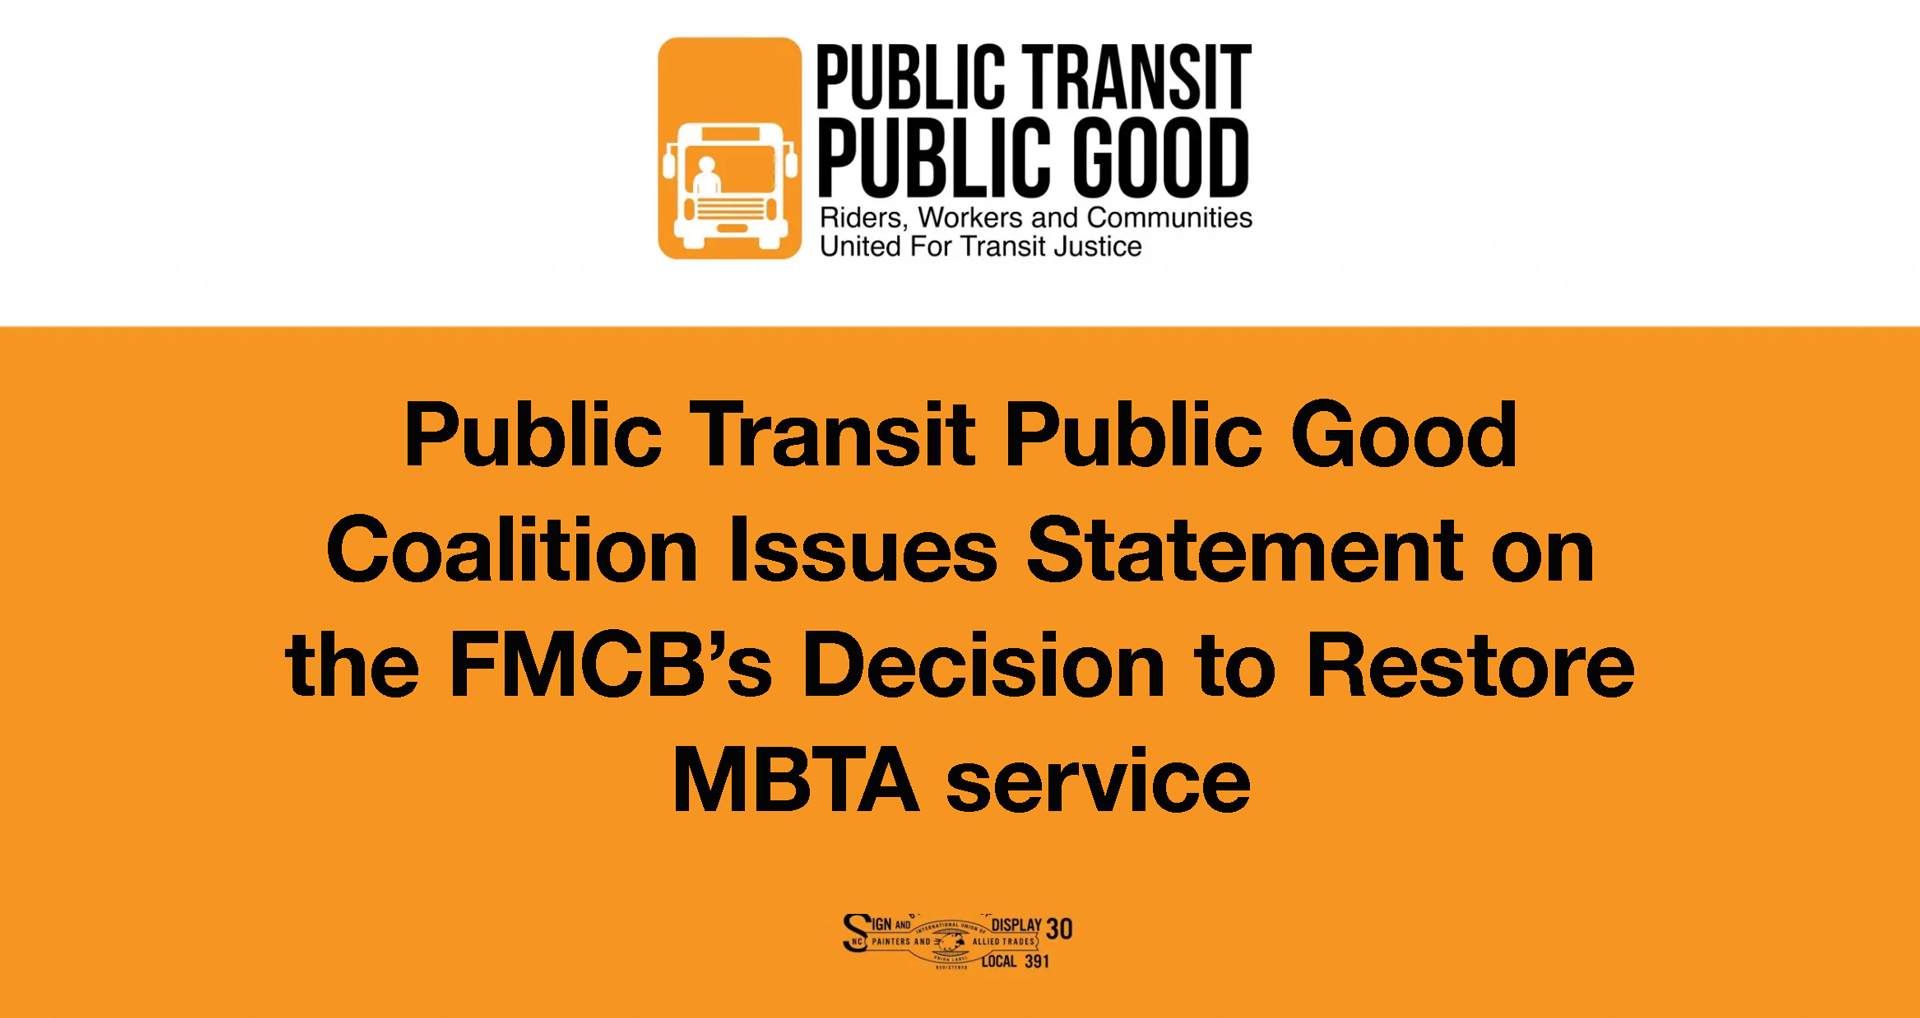 Public Transit Public Good Coalition Issues Statement on the FMCB's Decision to Restore MBTA service